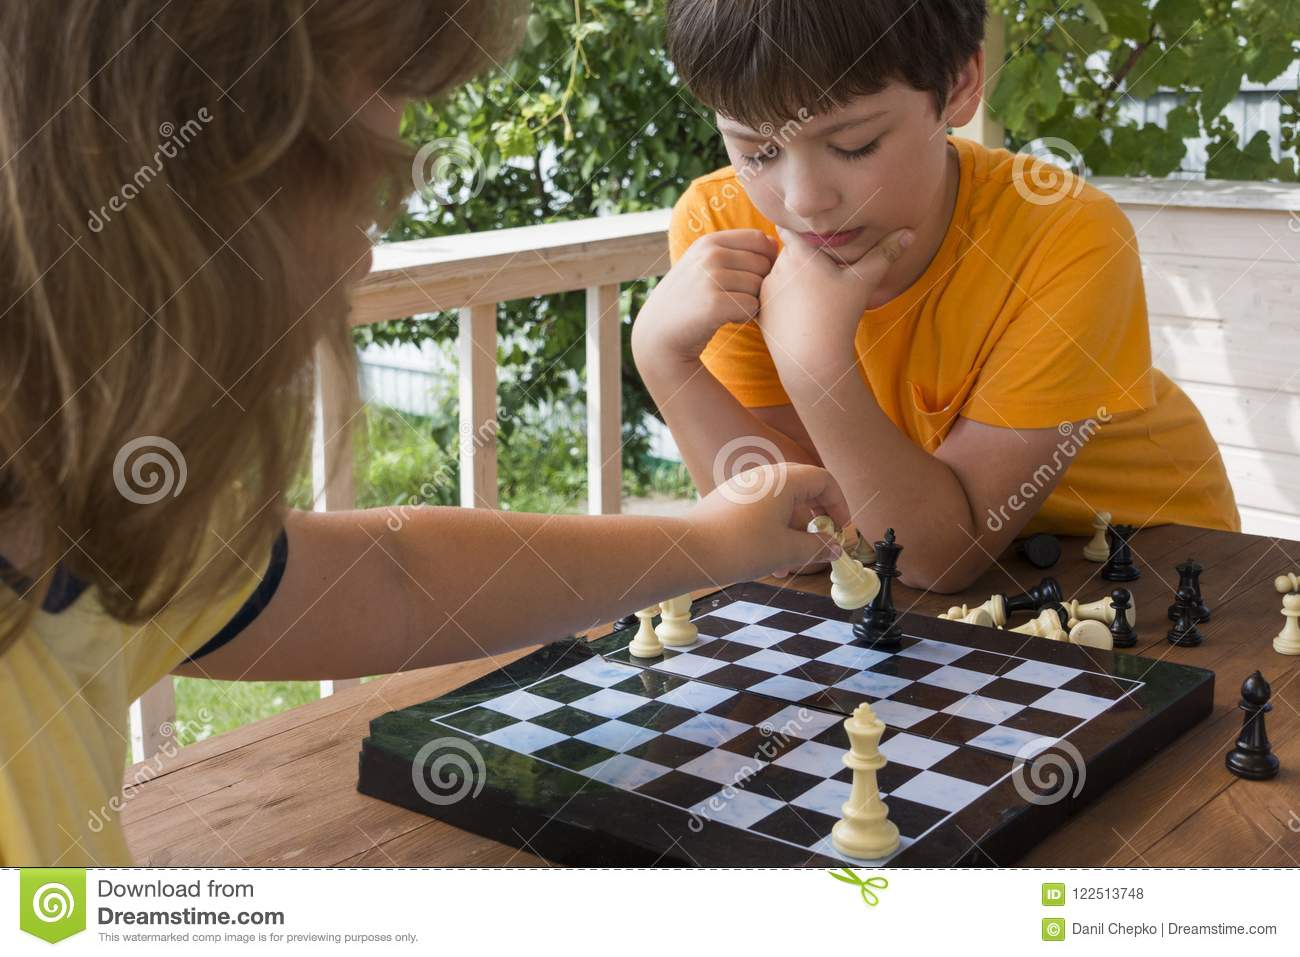 Download Child Playing Chess Outdors, Young Boy Making A Move Stock Photo - Image of hand, learning: 122513748